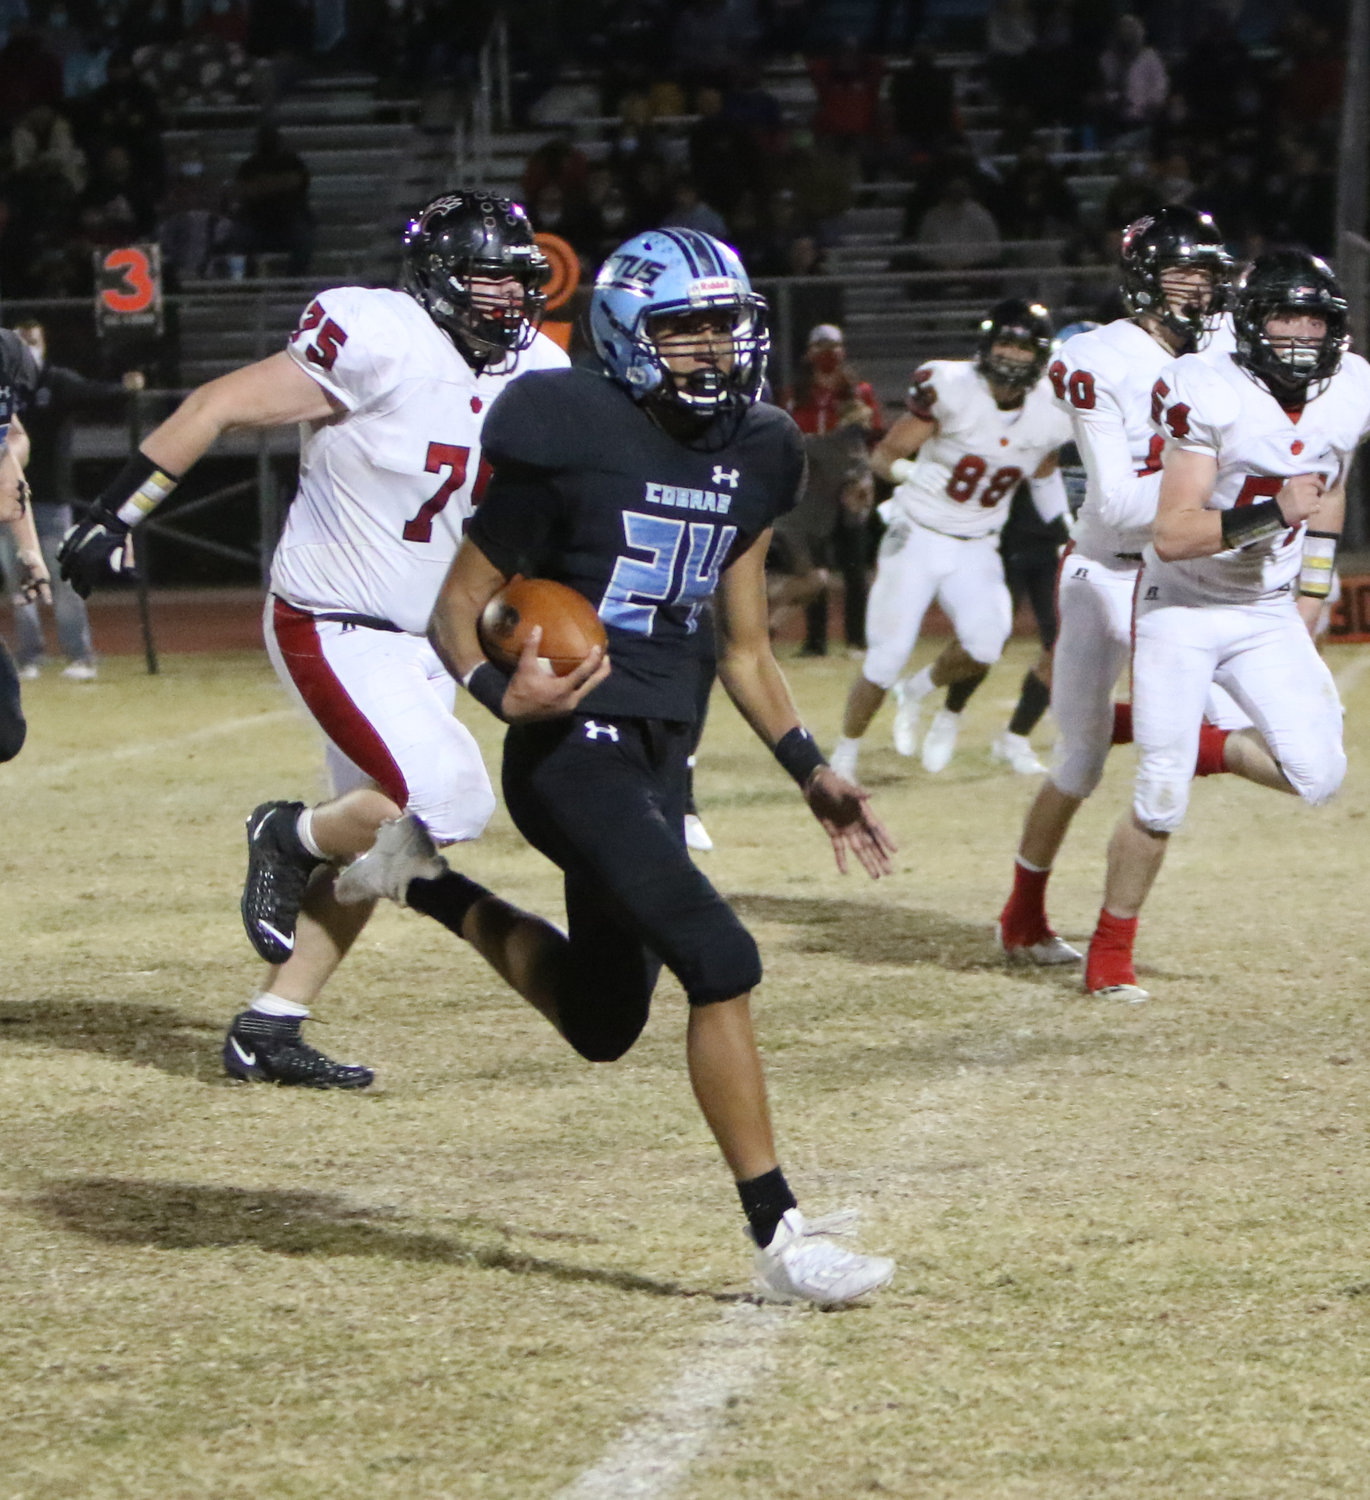 Cactus sophomore Tovia Vito breaks into the open field in the Cobras 41-7 4A quarterfinal win over Flagstaff Coconino Nov. 27 in Glendale.